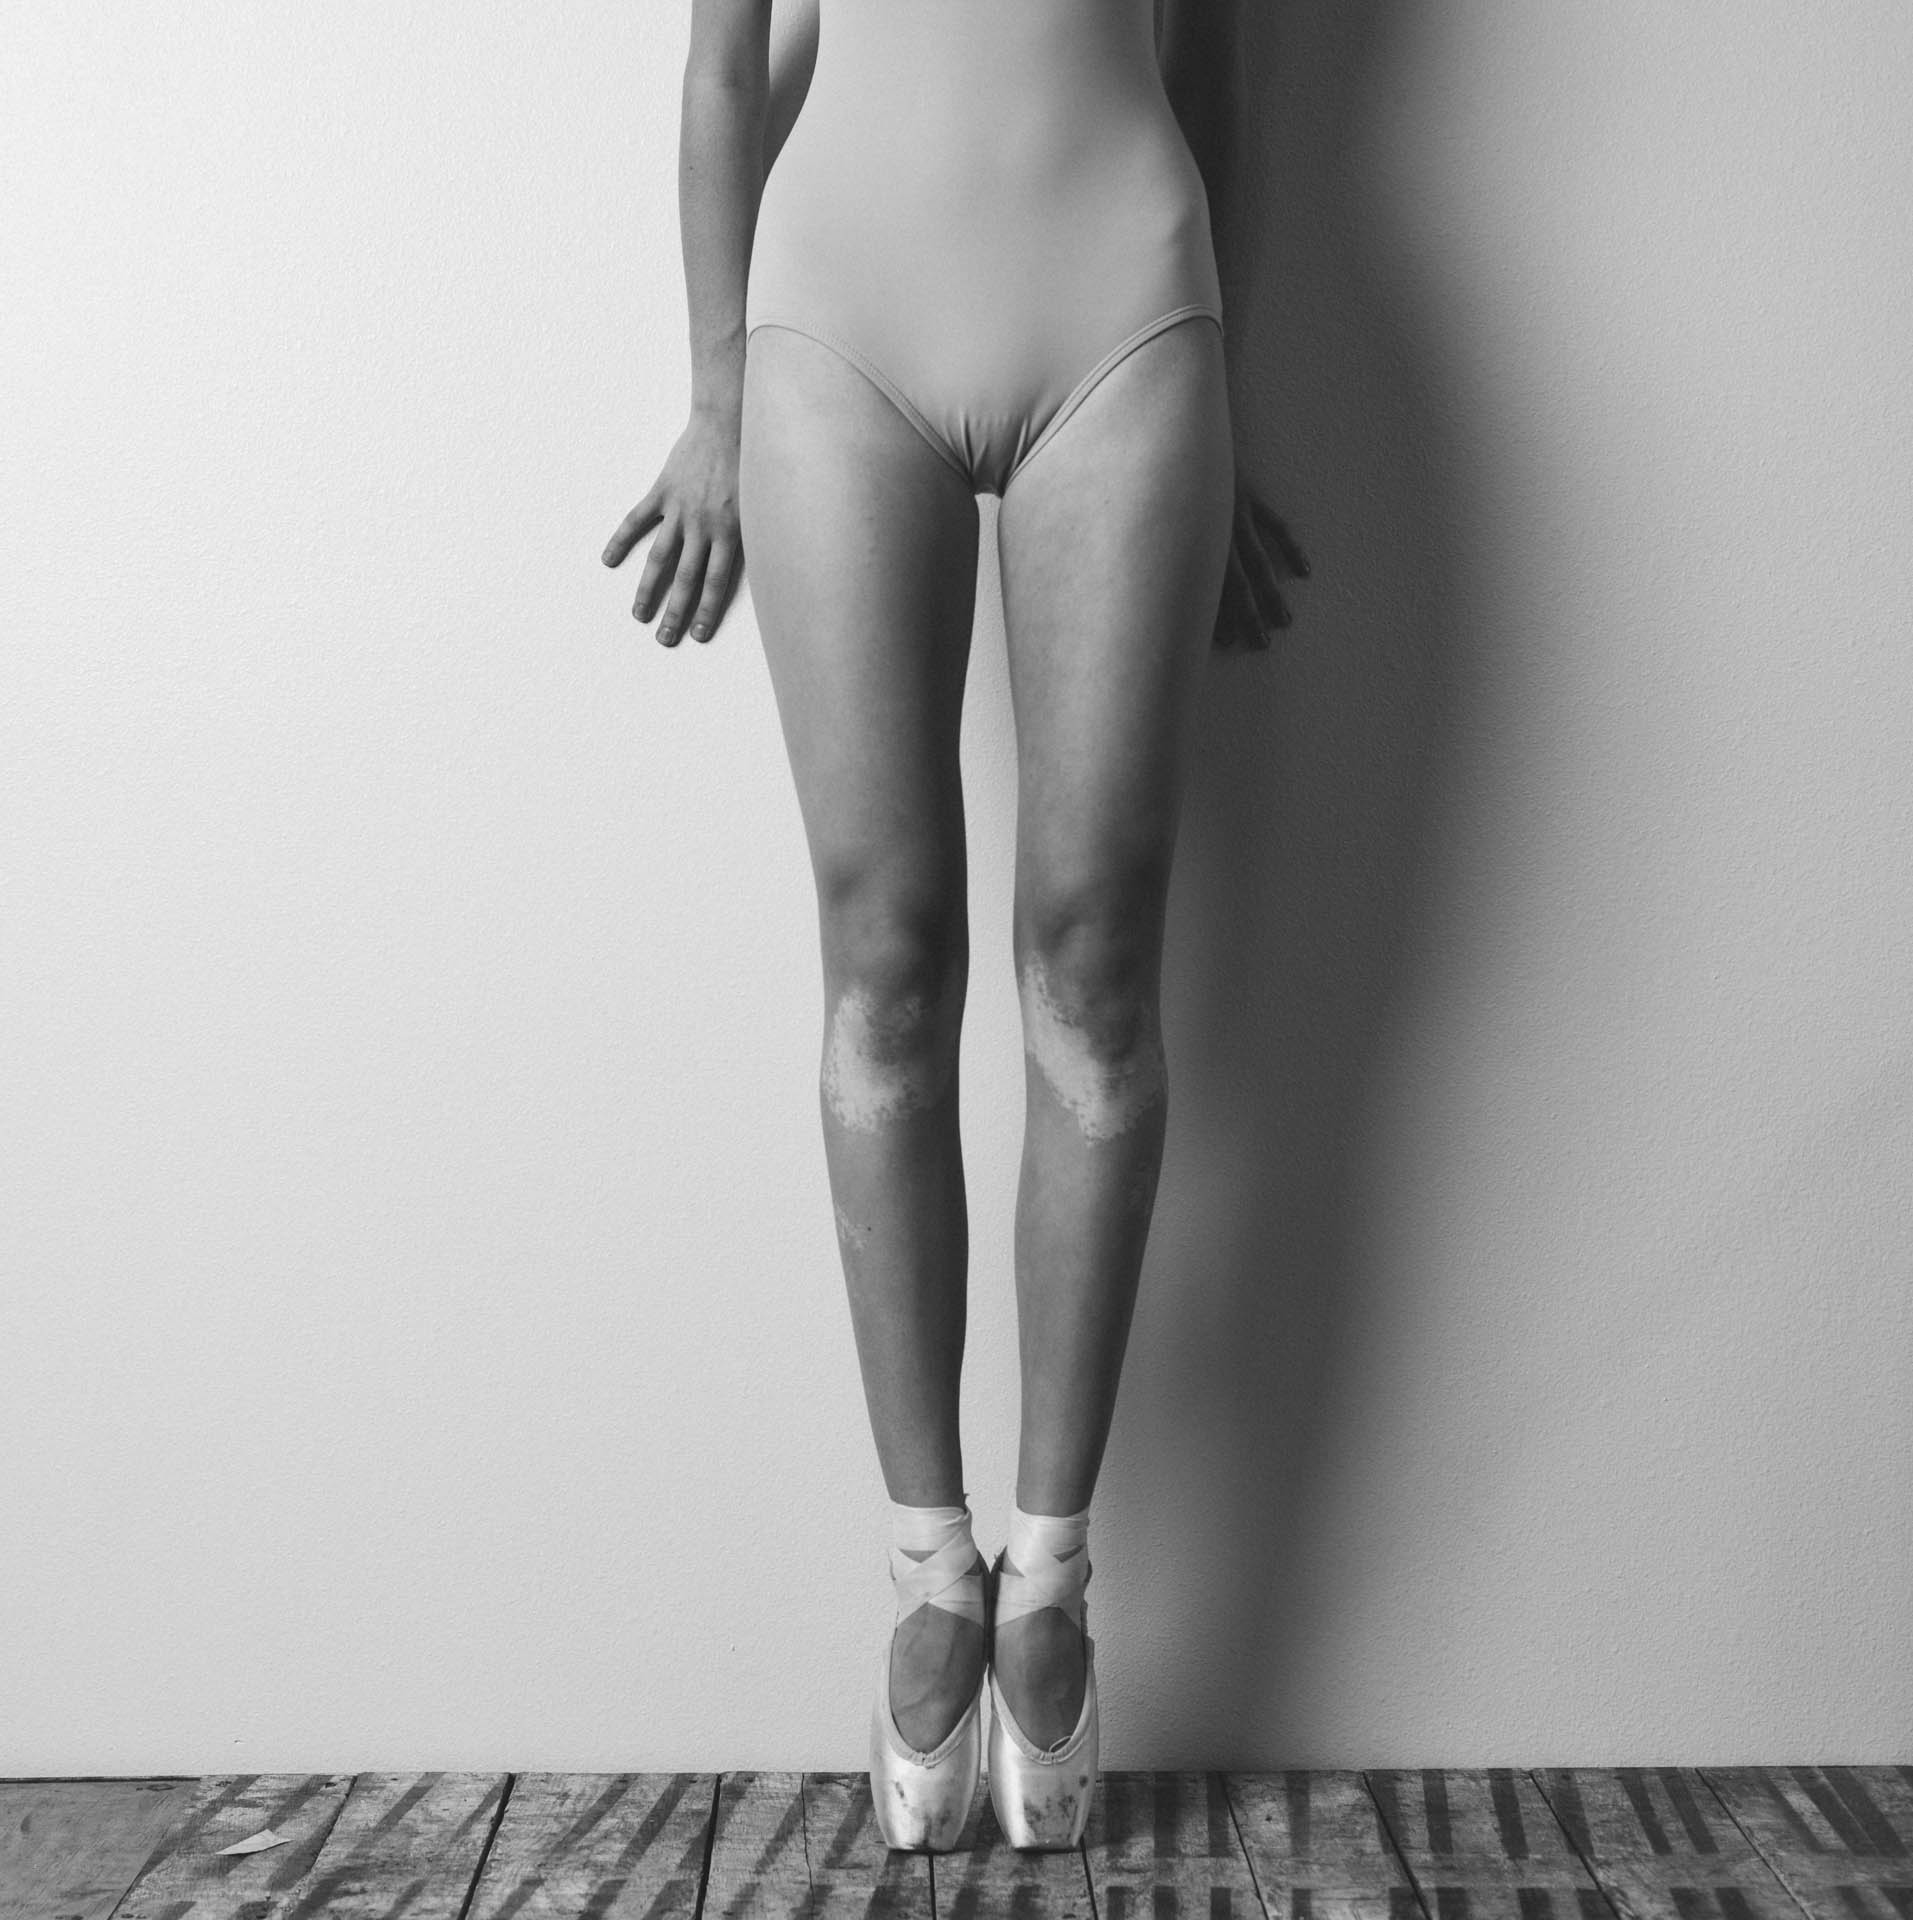 hannah-ballerina-body-detail-on-pointe-9521